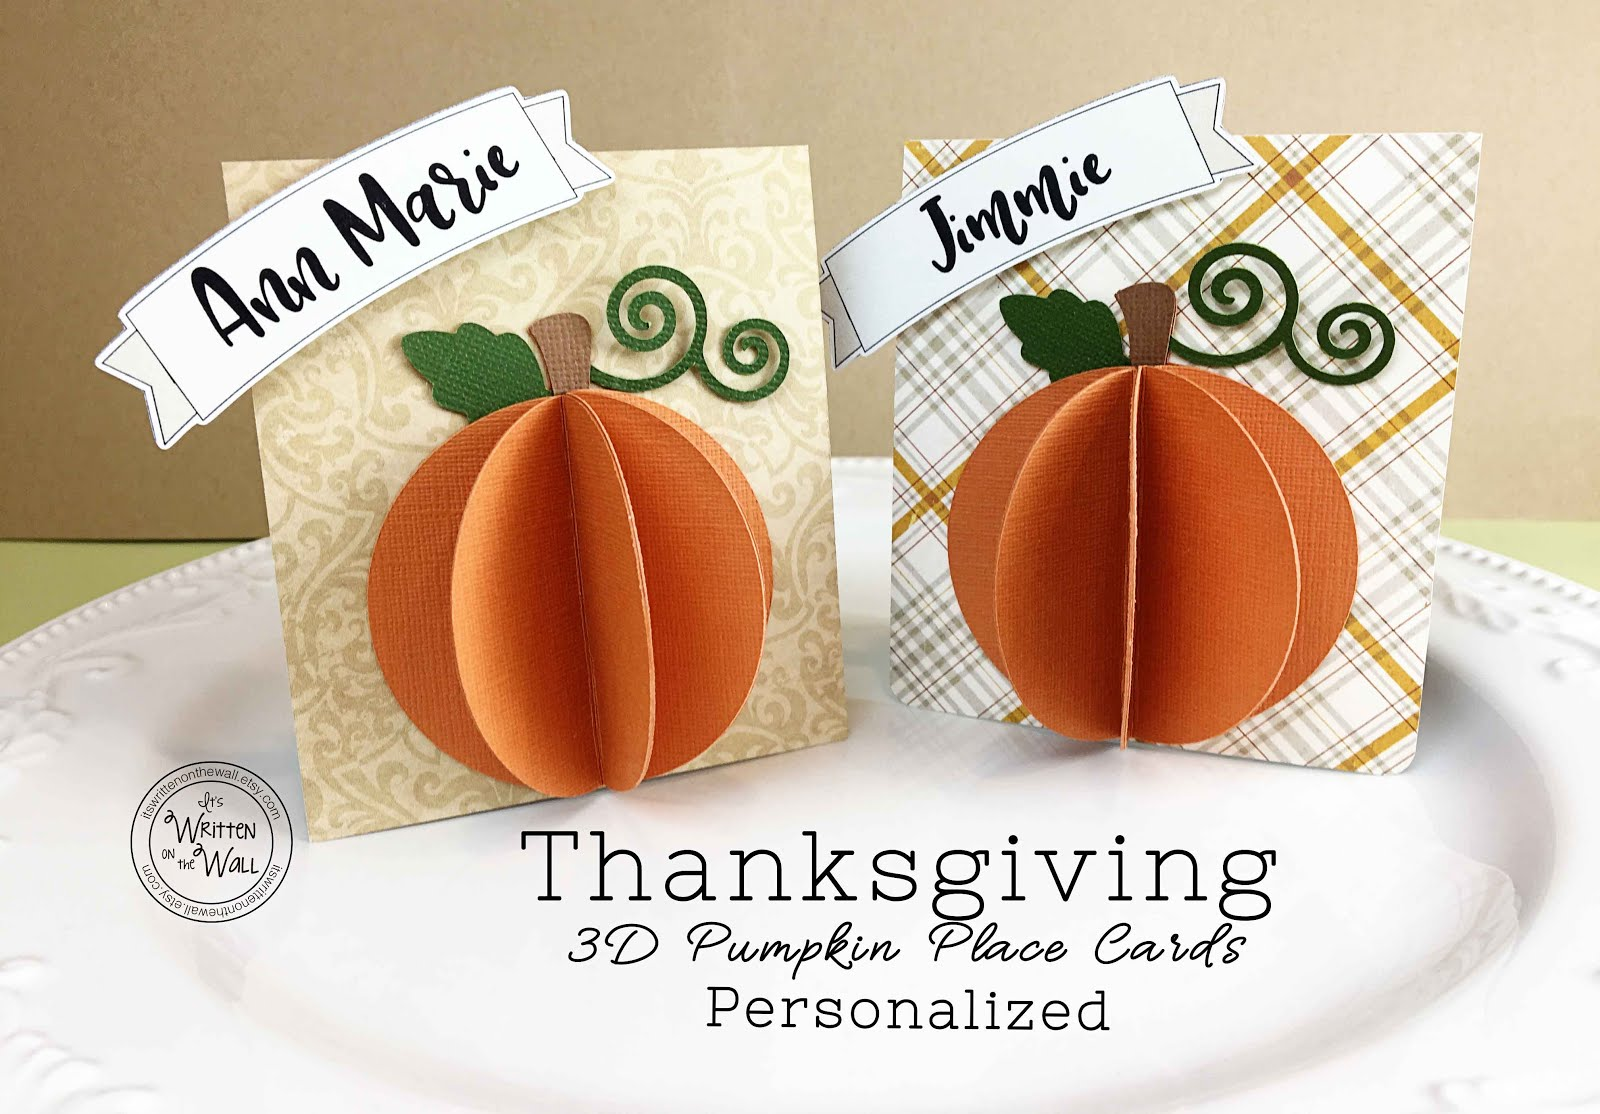 Thanksgiving 3D Pumpkin Place Cards